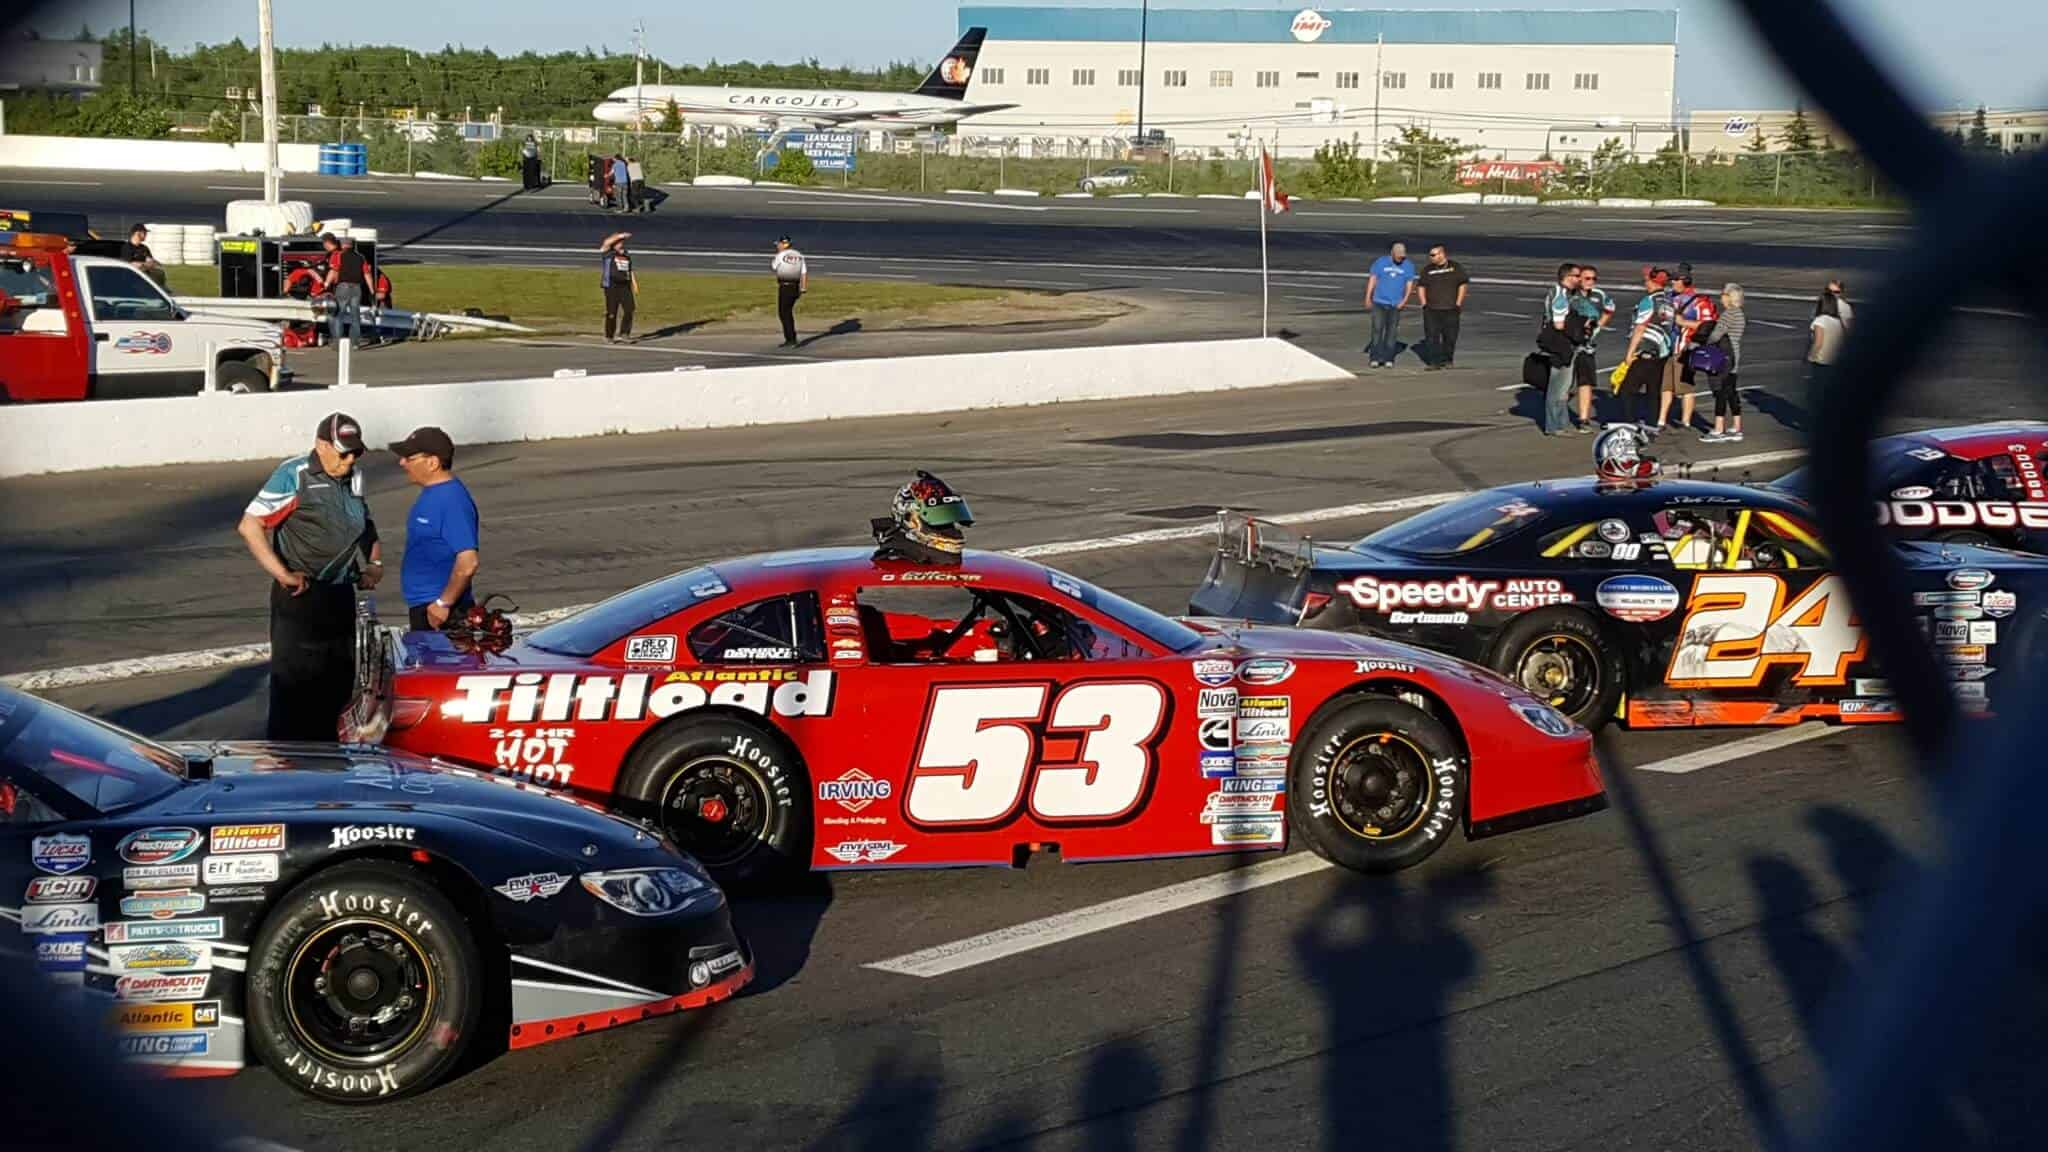 race cars lined up